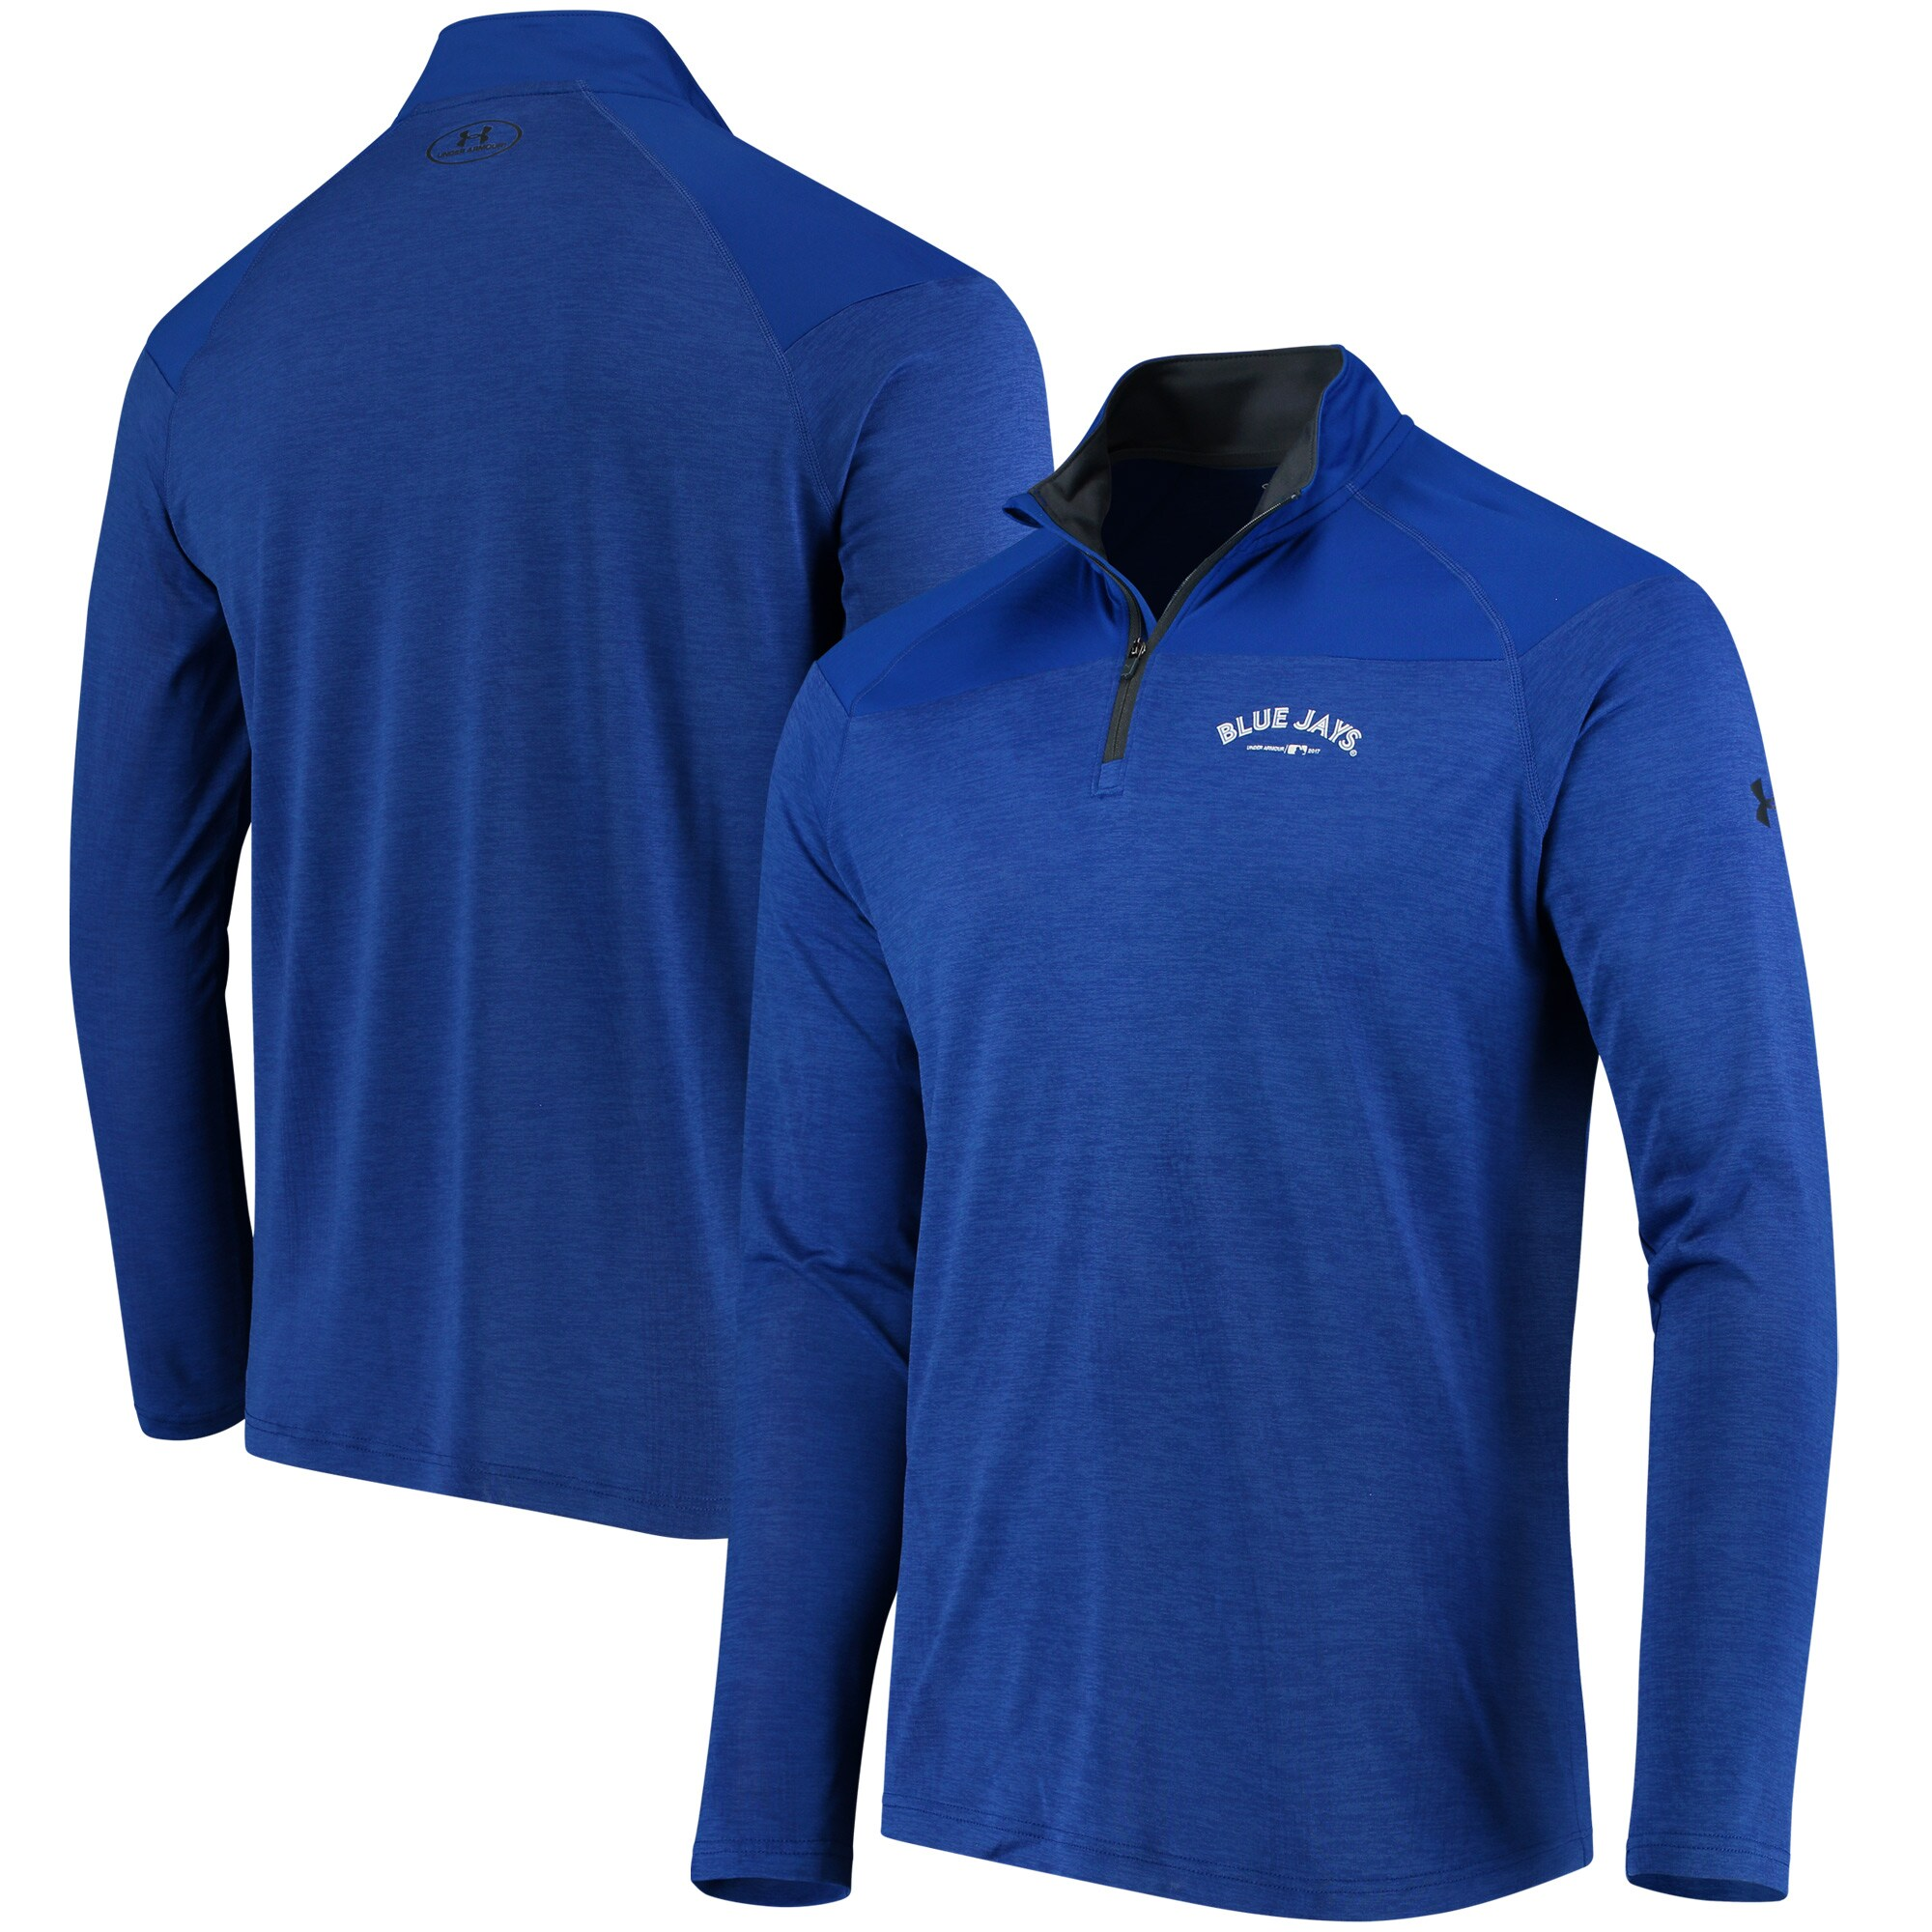 Toronto Blue Jays Under Armour Tech Tonal Twist Quarter-Zip Pullover Jacket - Royal